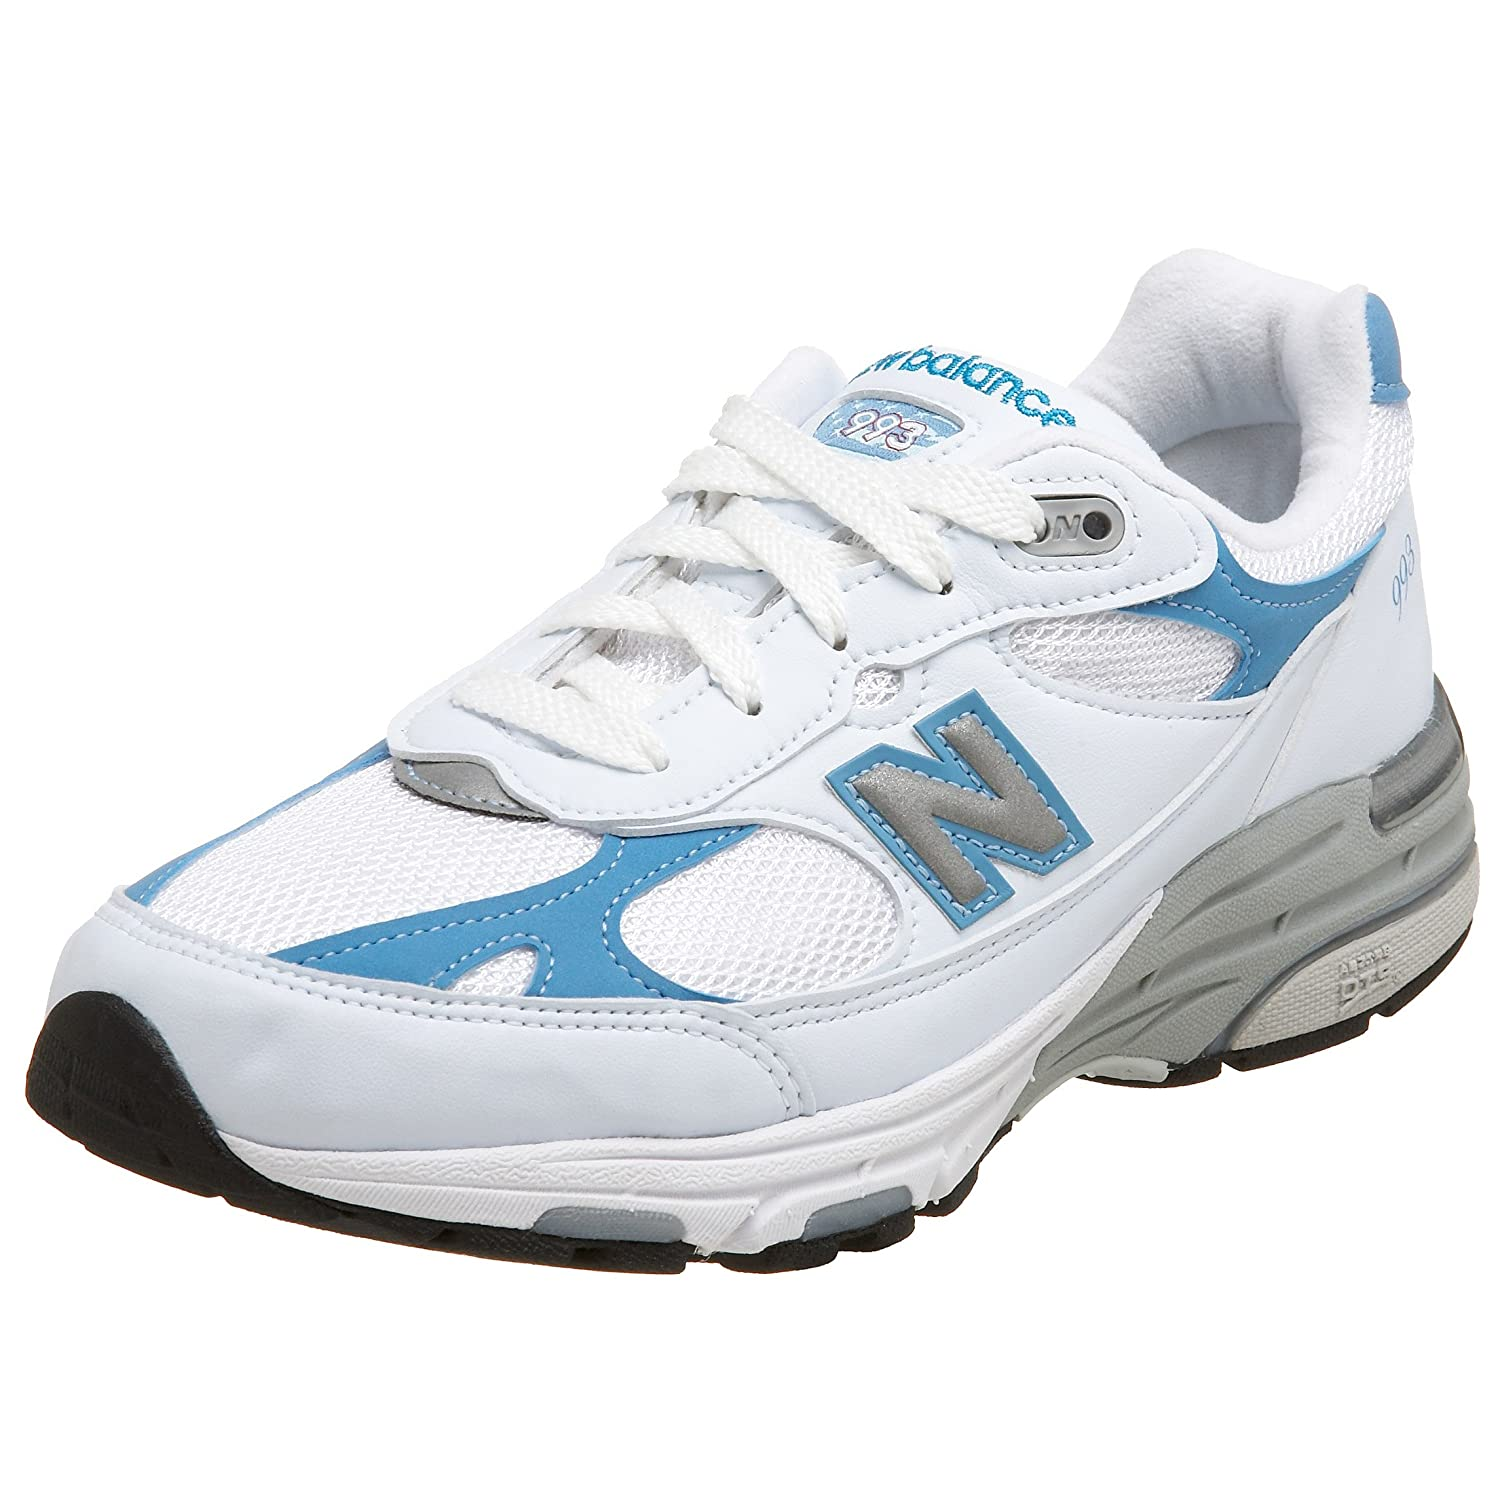 new style ac41f 6415c New Balance Womens Running Shoes Sneakers WR 993 Trainers (4 ...